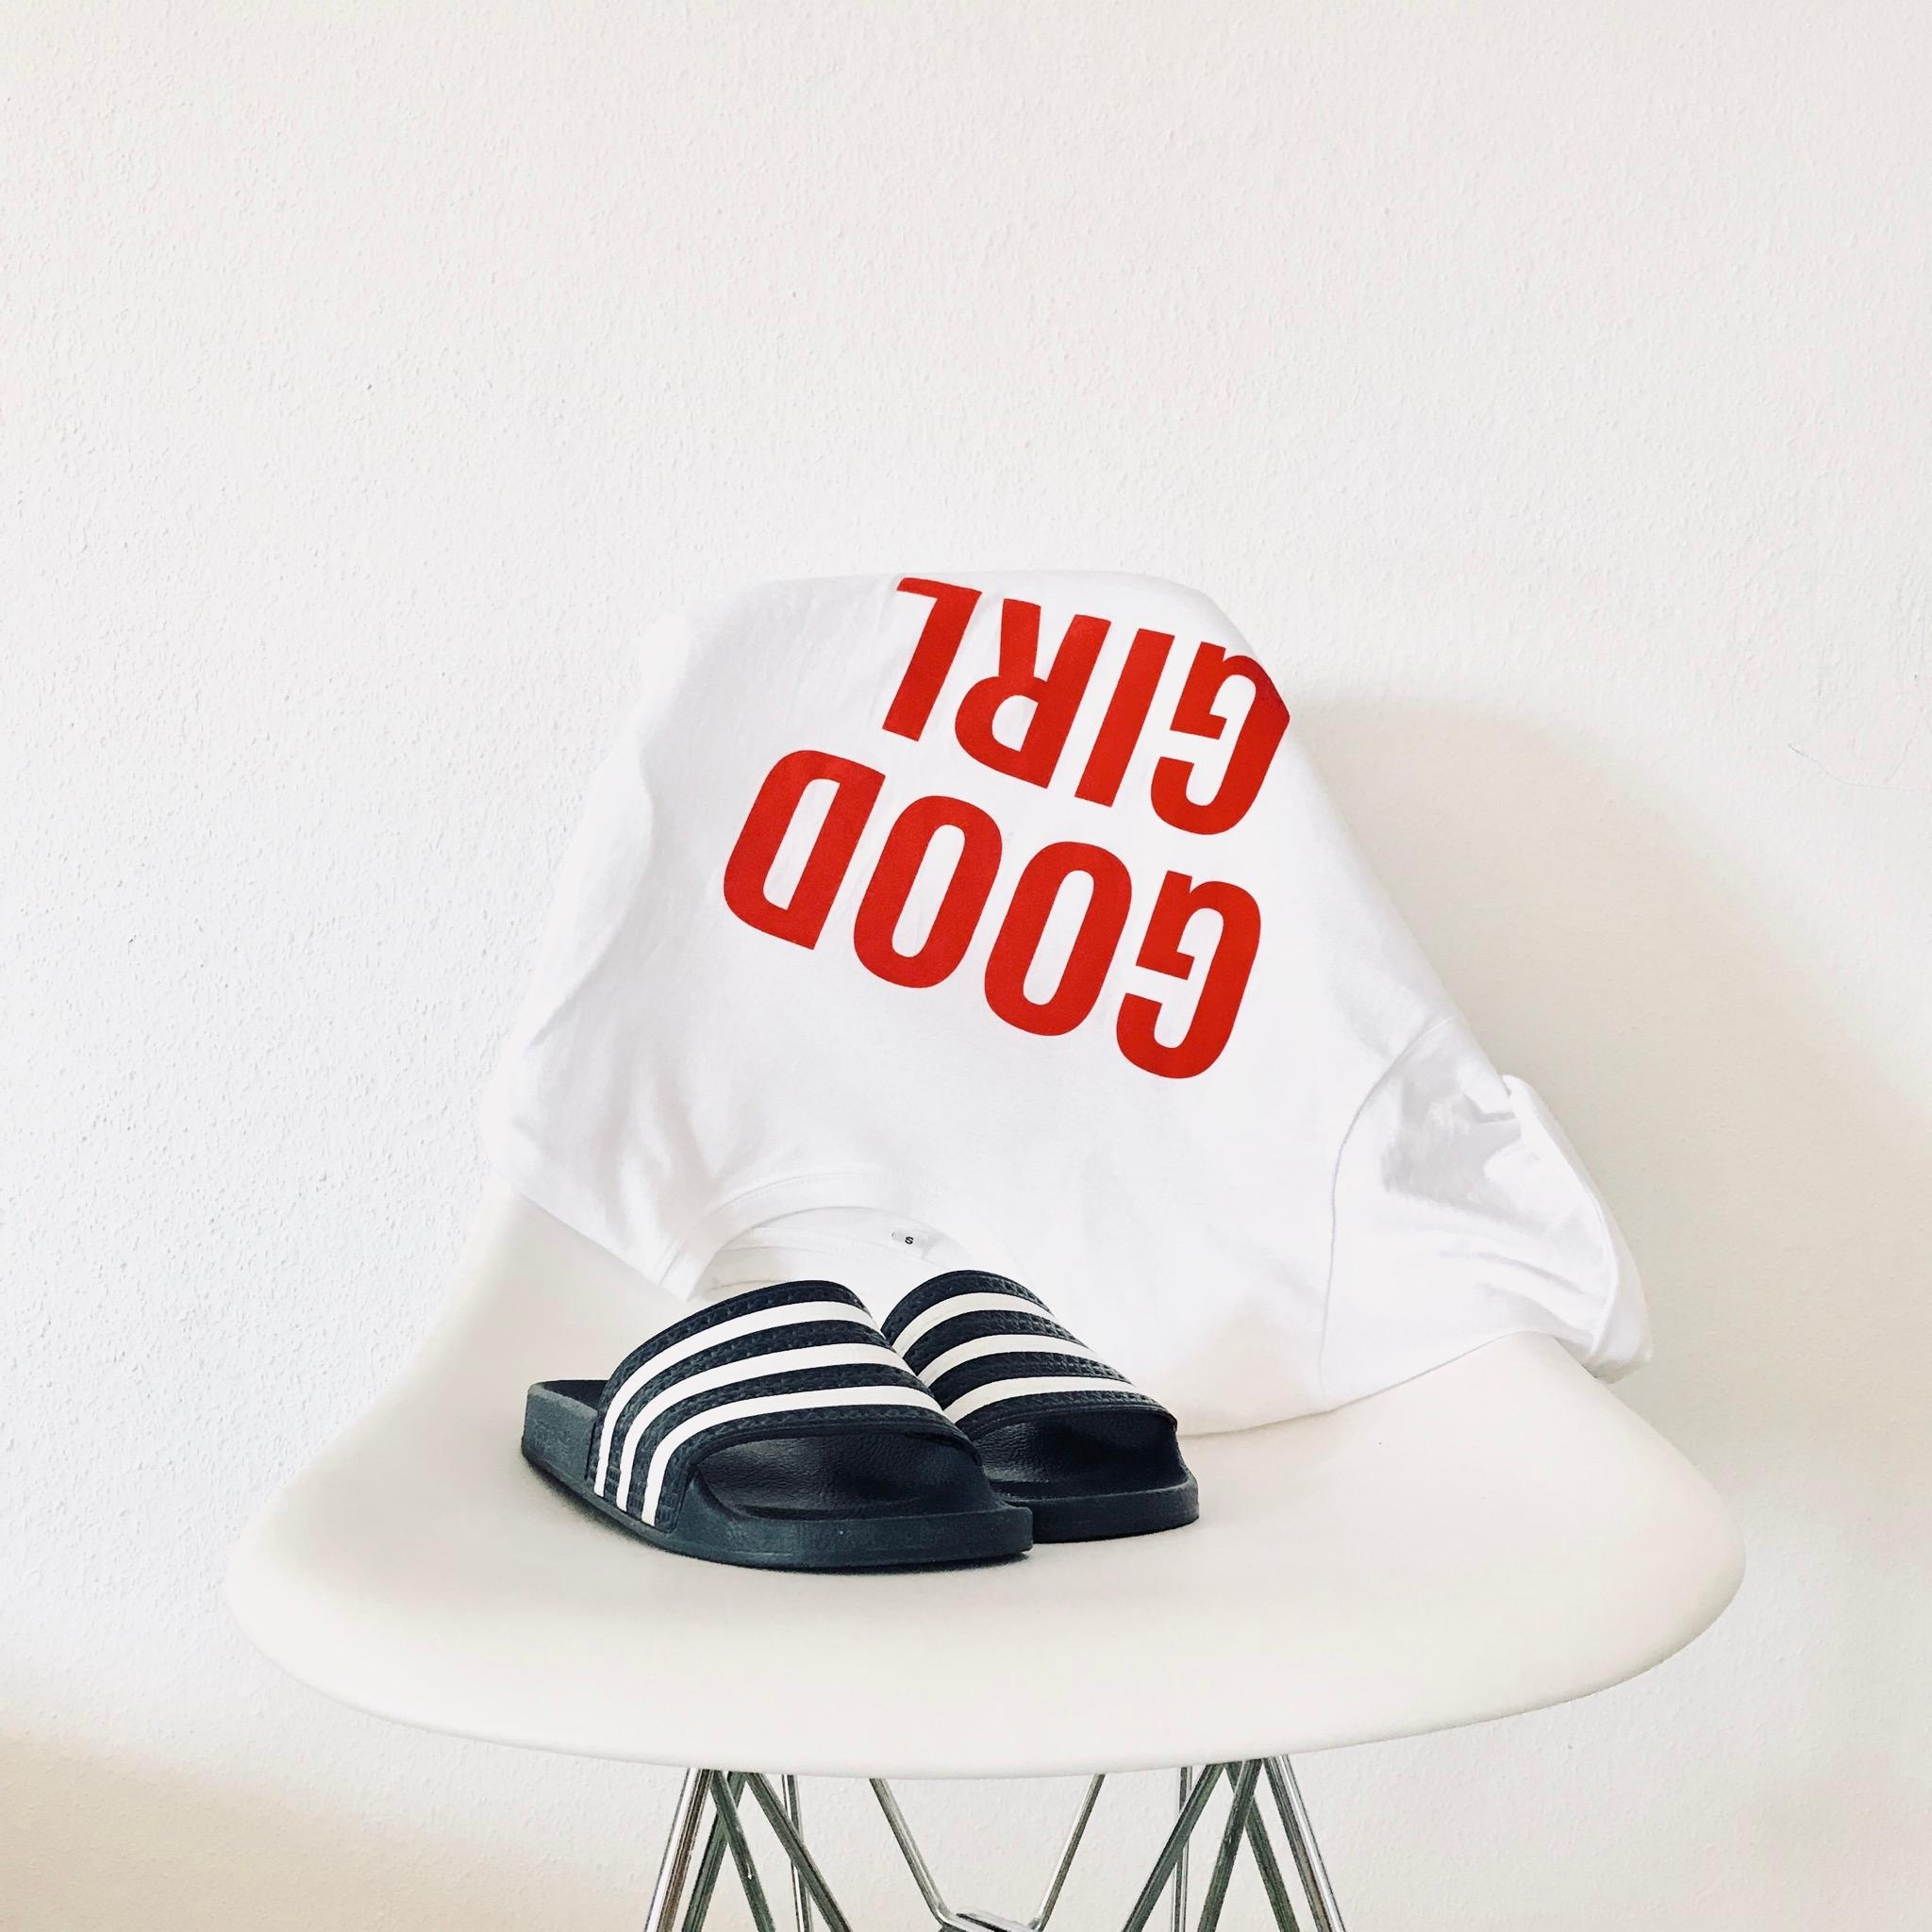 Weekend essentials.